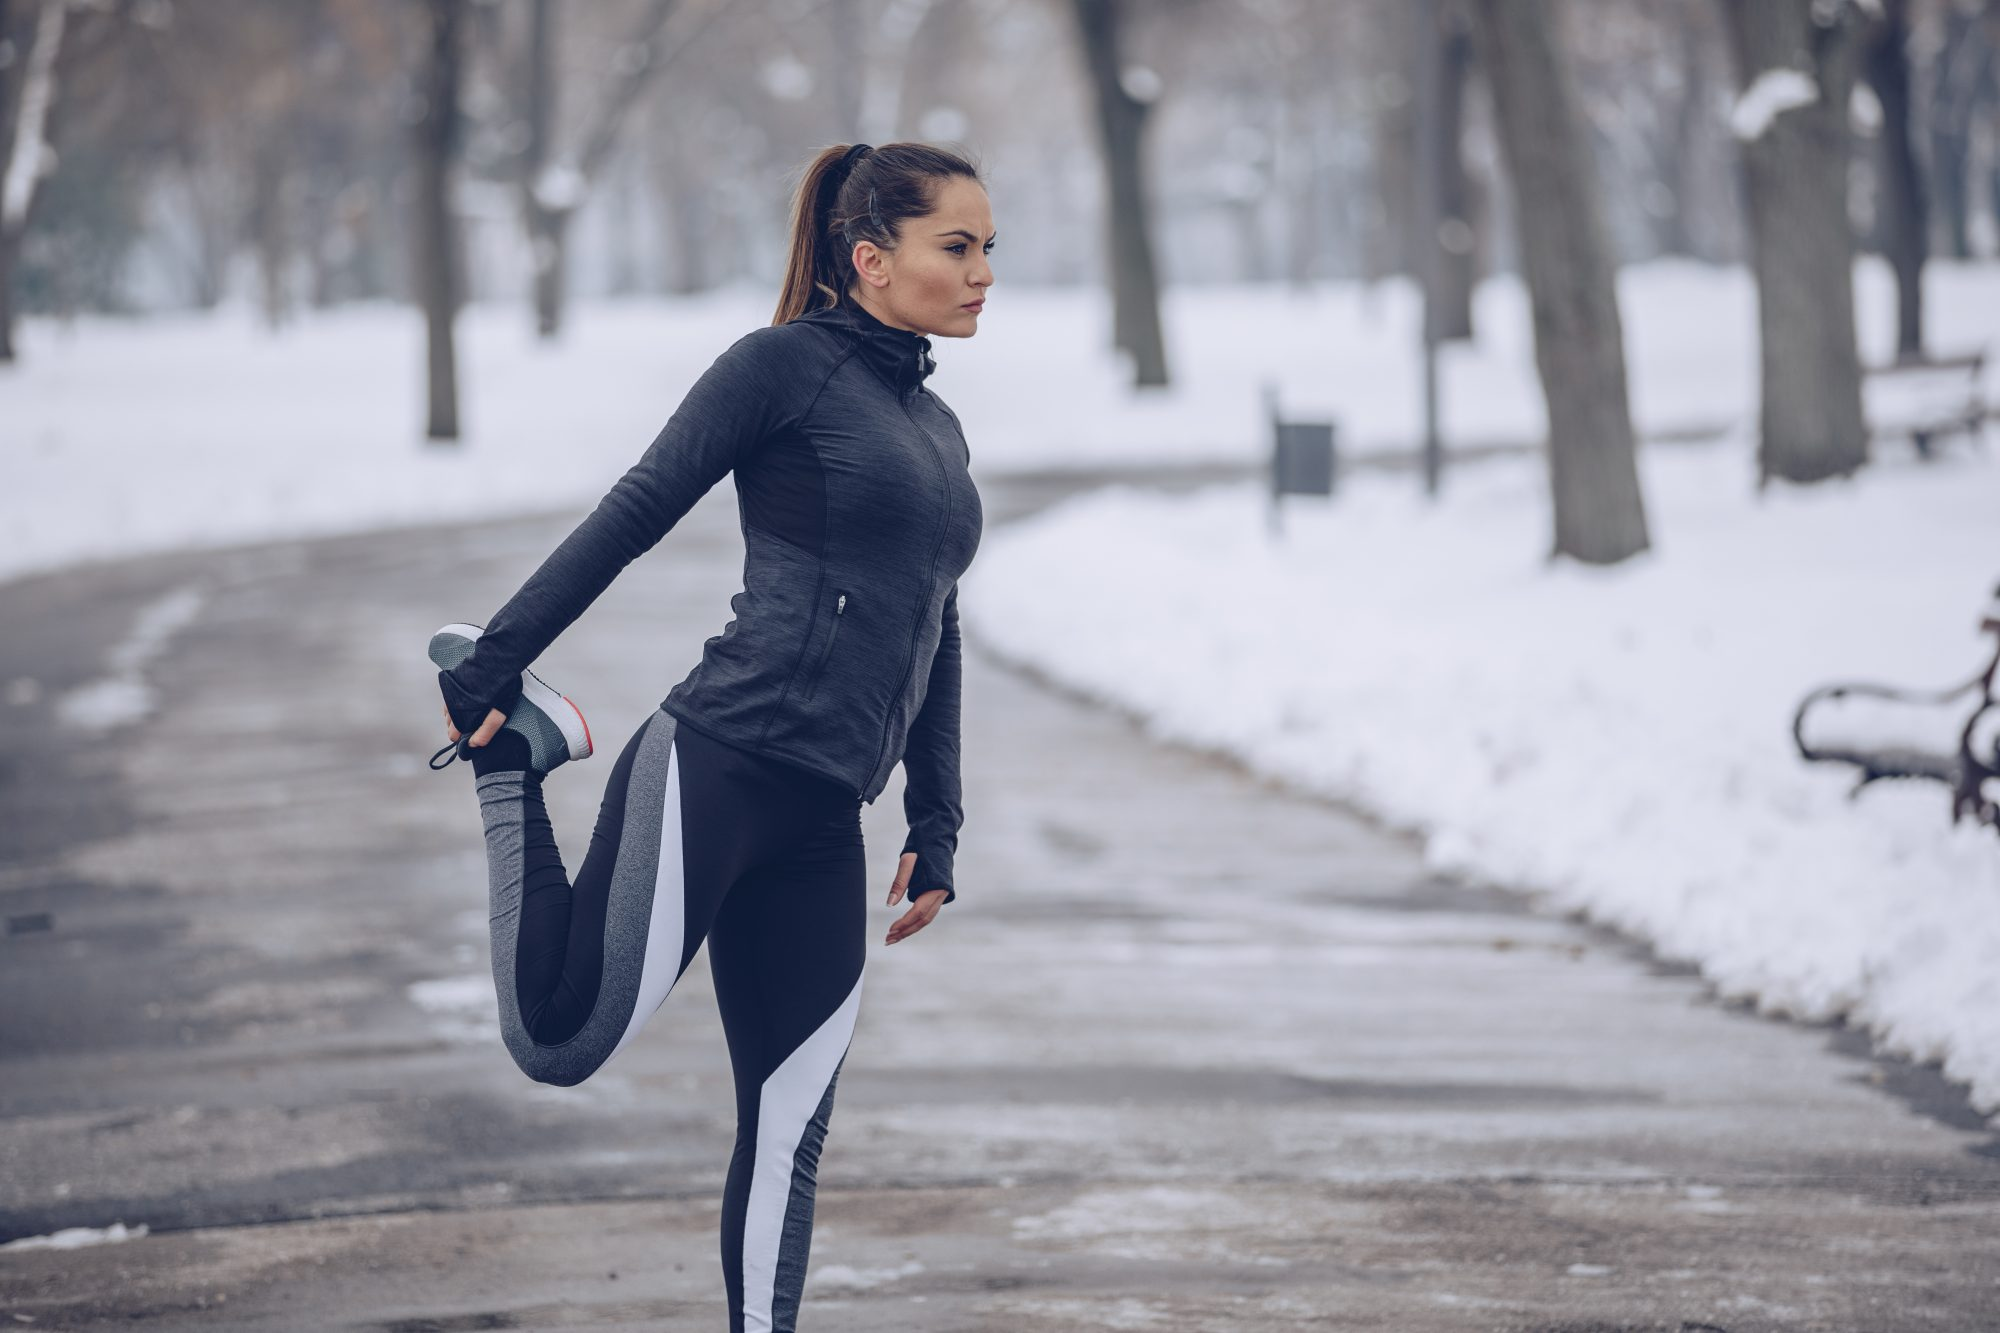 Winter Workout Gear That Stands Up to Any Weather